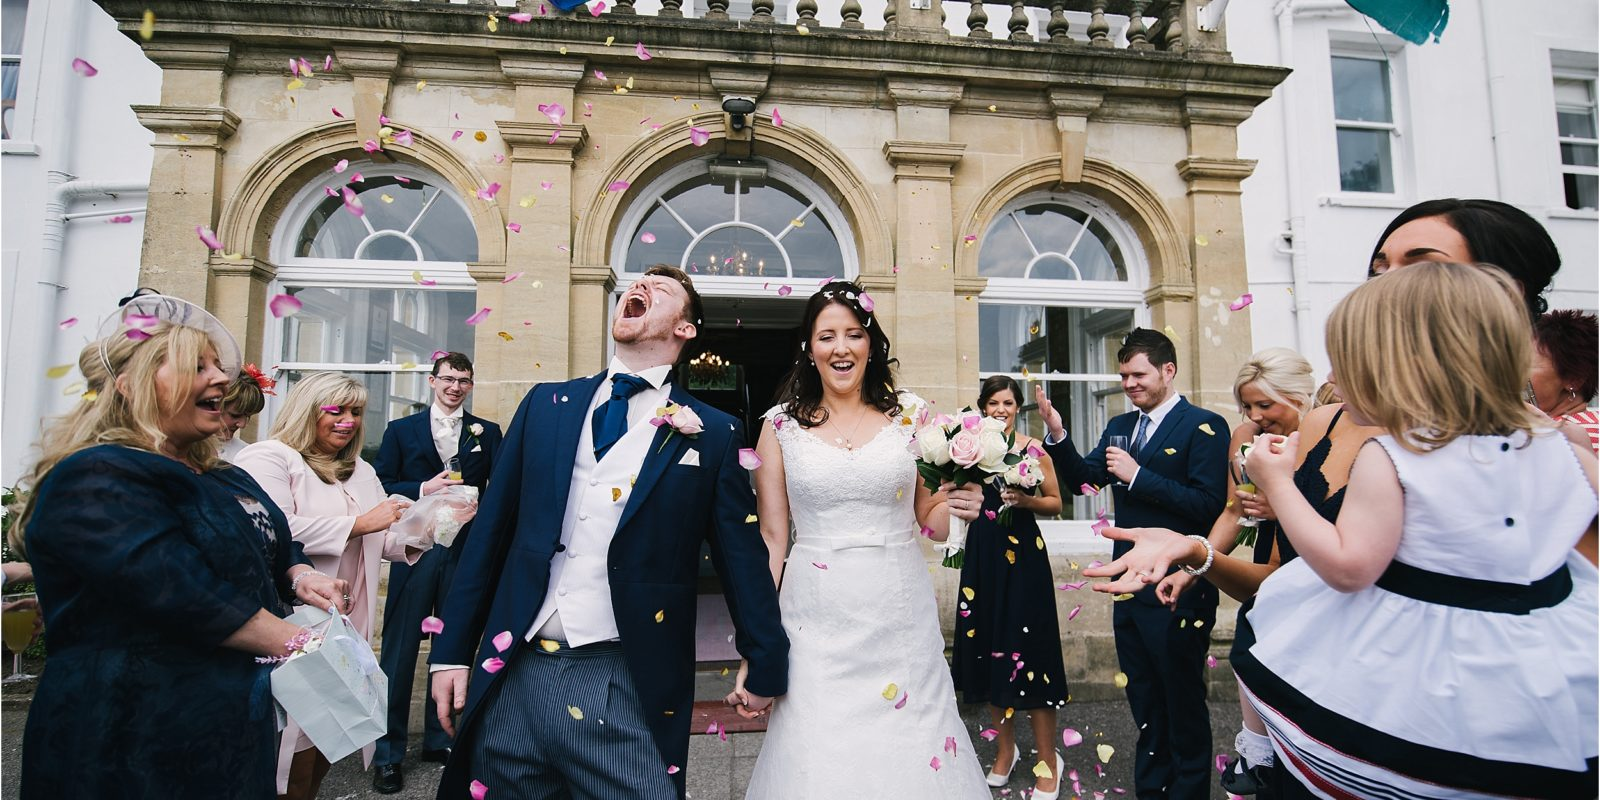 South Wales Wedding Photographer - Court Coleman Manor